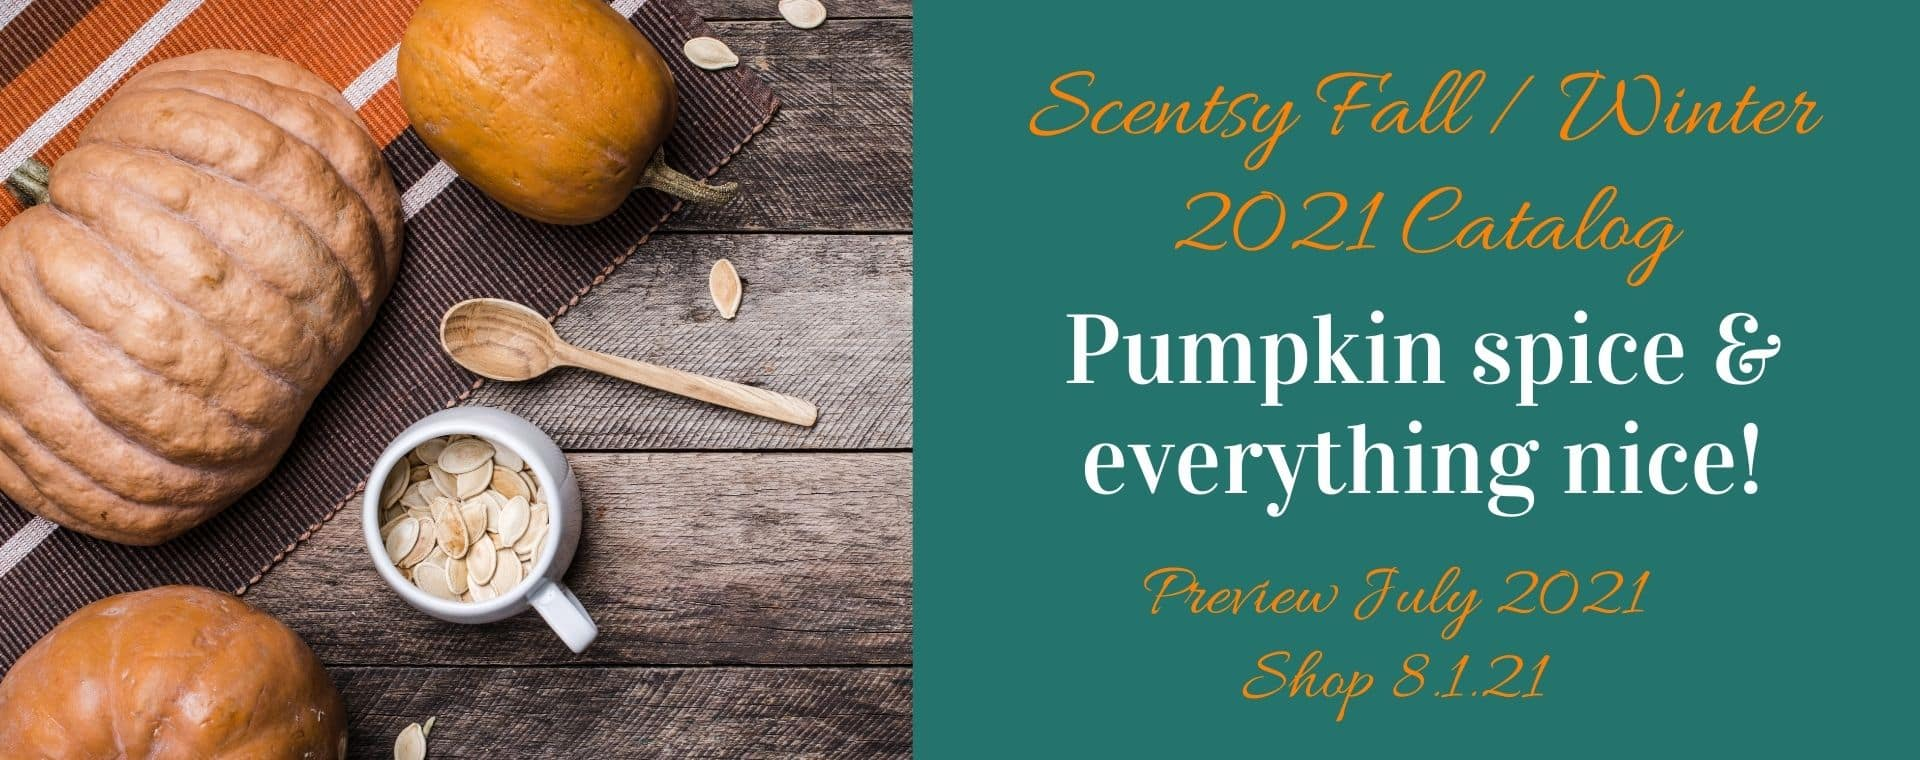 SCENTSY FALL 2021 WINTER CATALOG COMING AUGUST 2021 1